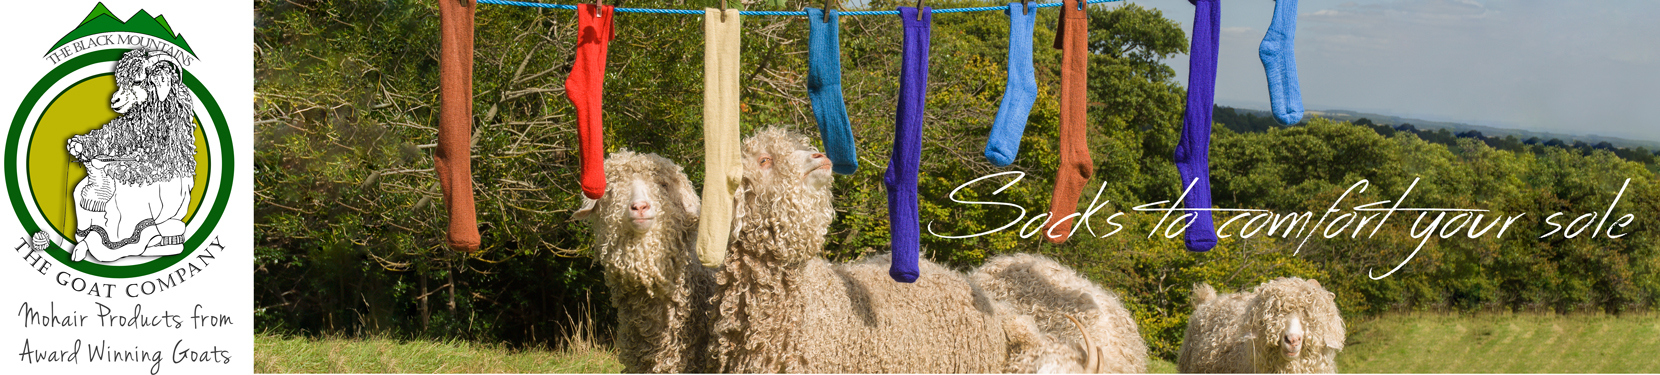 Sustainable Mohair Socks and other products from The Goat Company